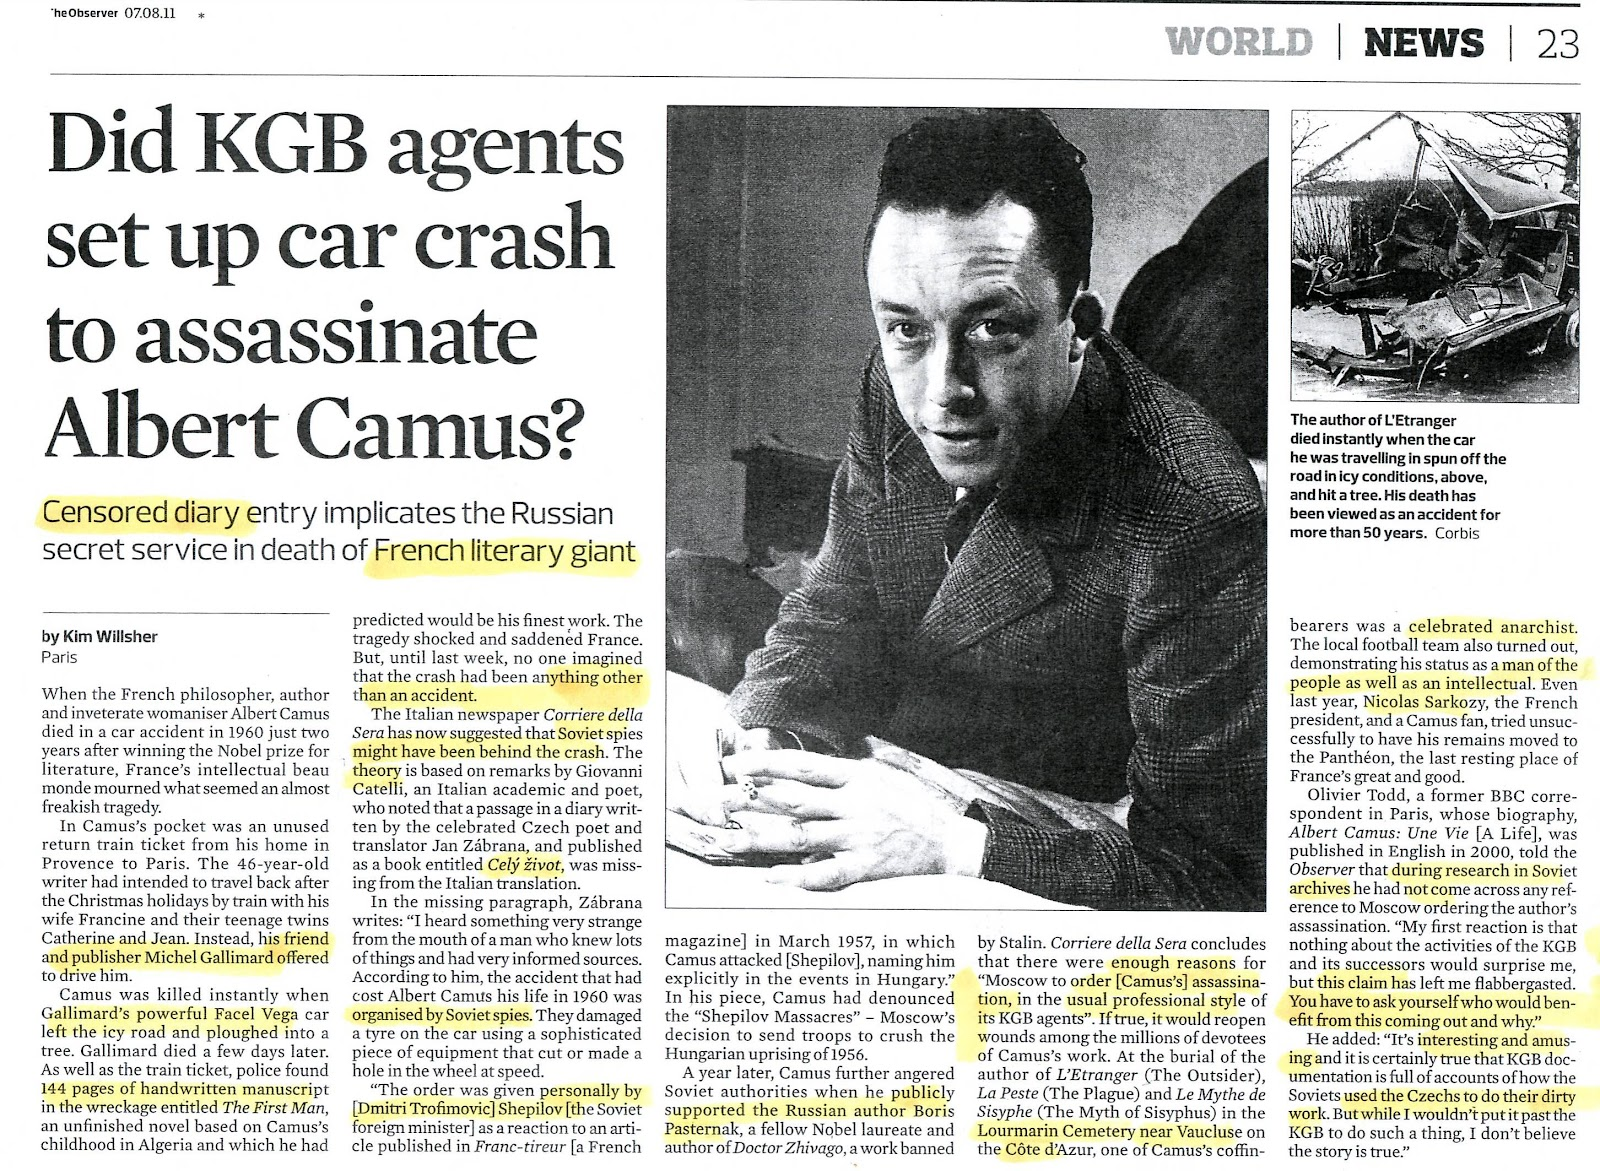 albert camus and the great tragedies of history in schindlers list